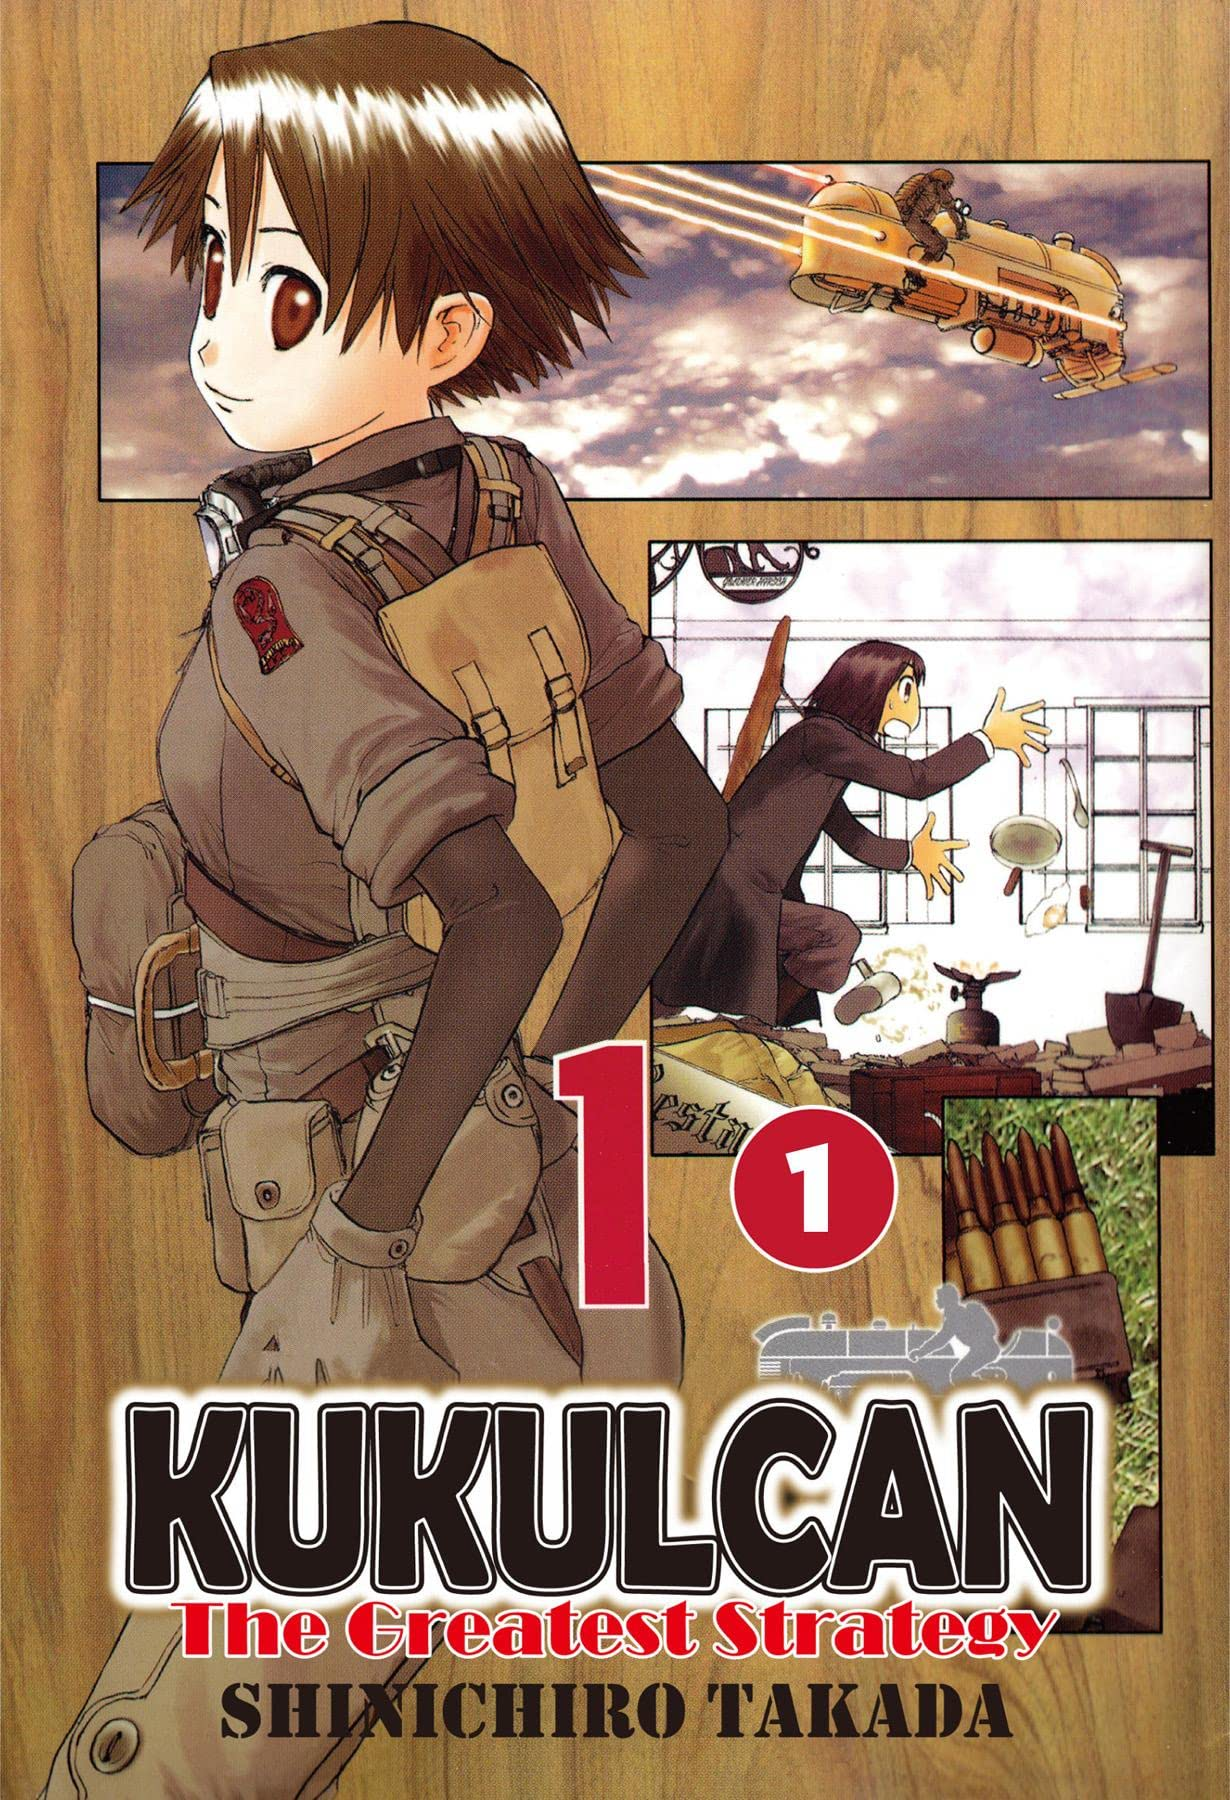 KUKULCAN The Greatest Strategy #1